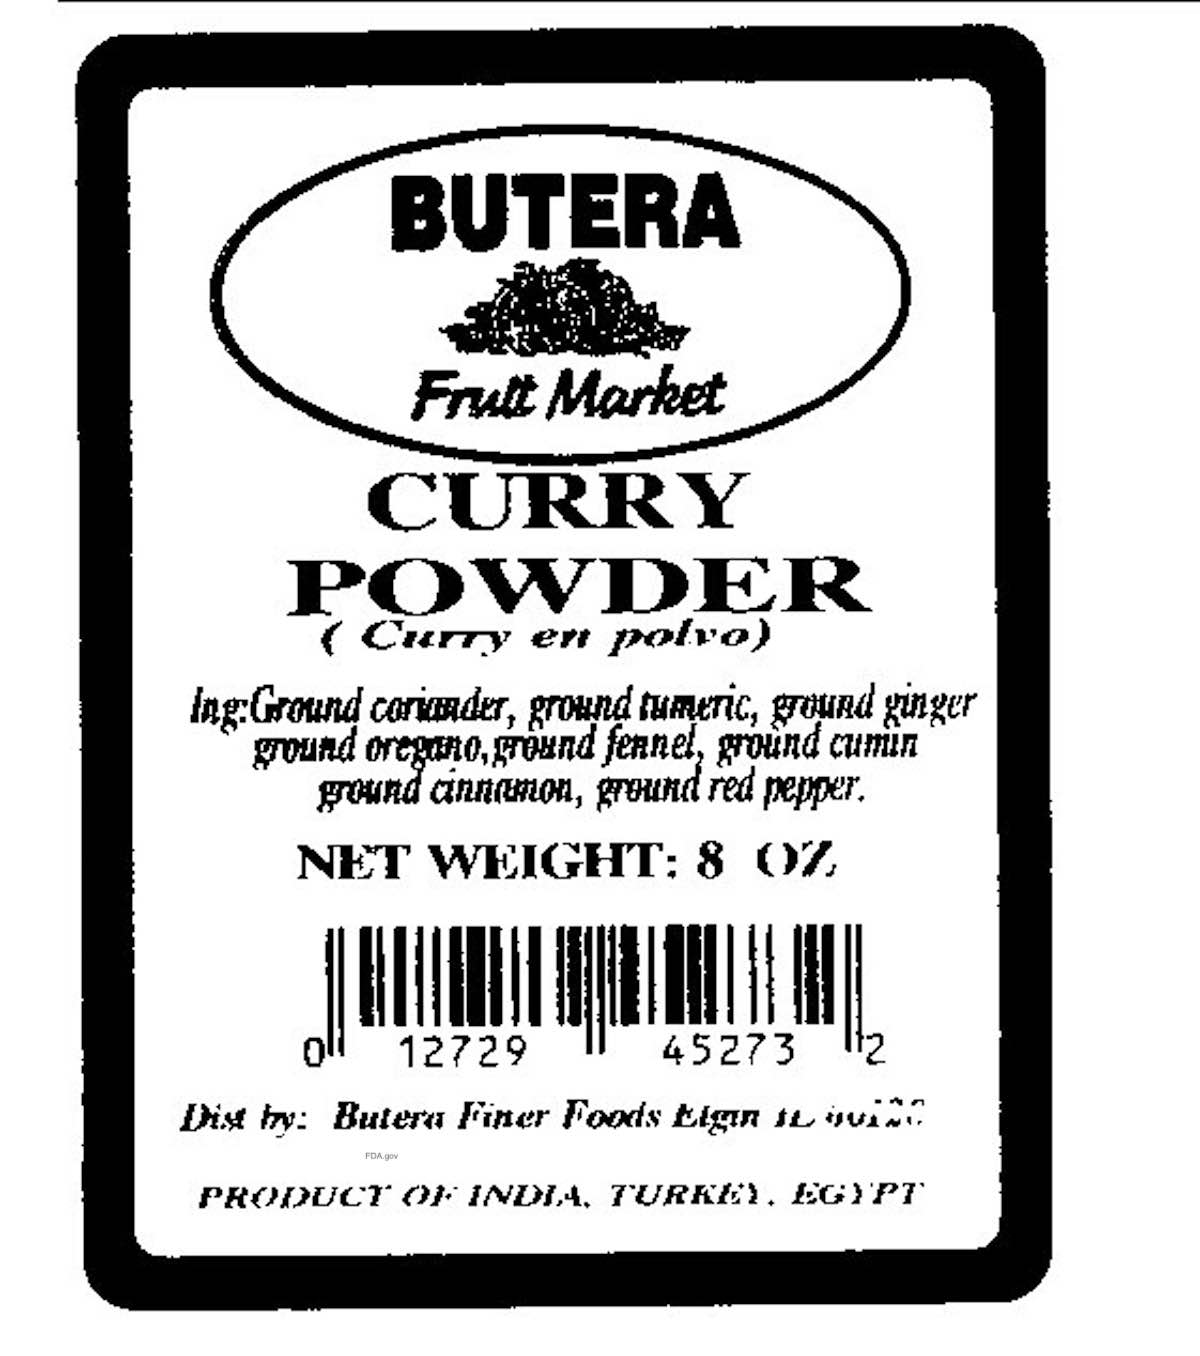 Butera Curry Powder Lead Contamination